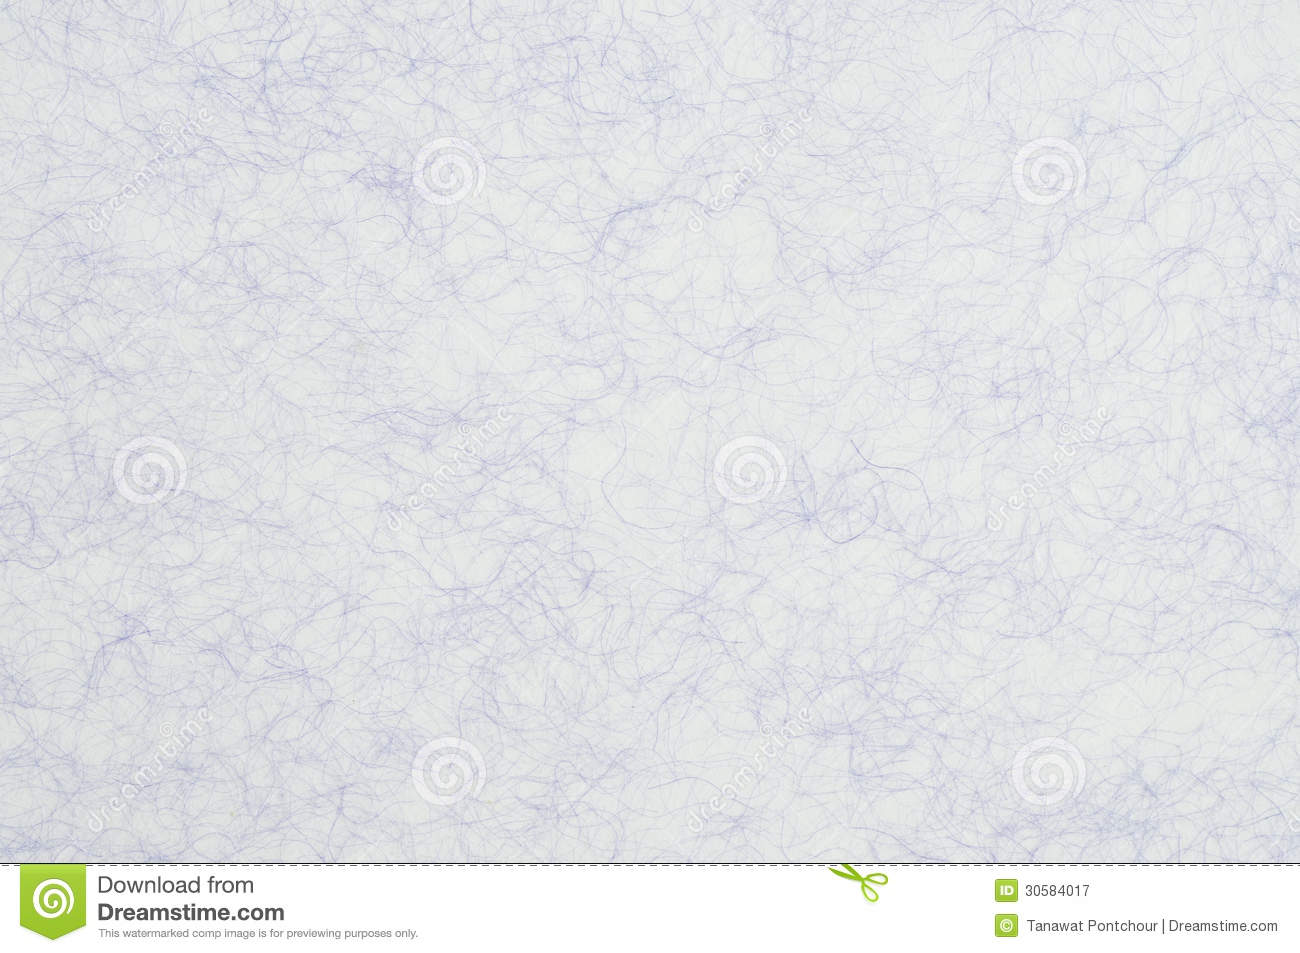 Bitten donut furthermore Royalty Free Stock Photography Handmade Paper Texture Background Mulberry Image30584017 together with Leaf Coloring Page Blank together with Menu Planner Printable Mood Tracker further Classic 50th Birthday Celebrate Party Invitations P 607 57 50c. on free blank paper